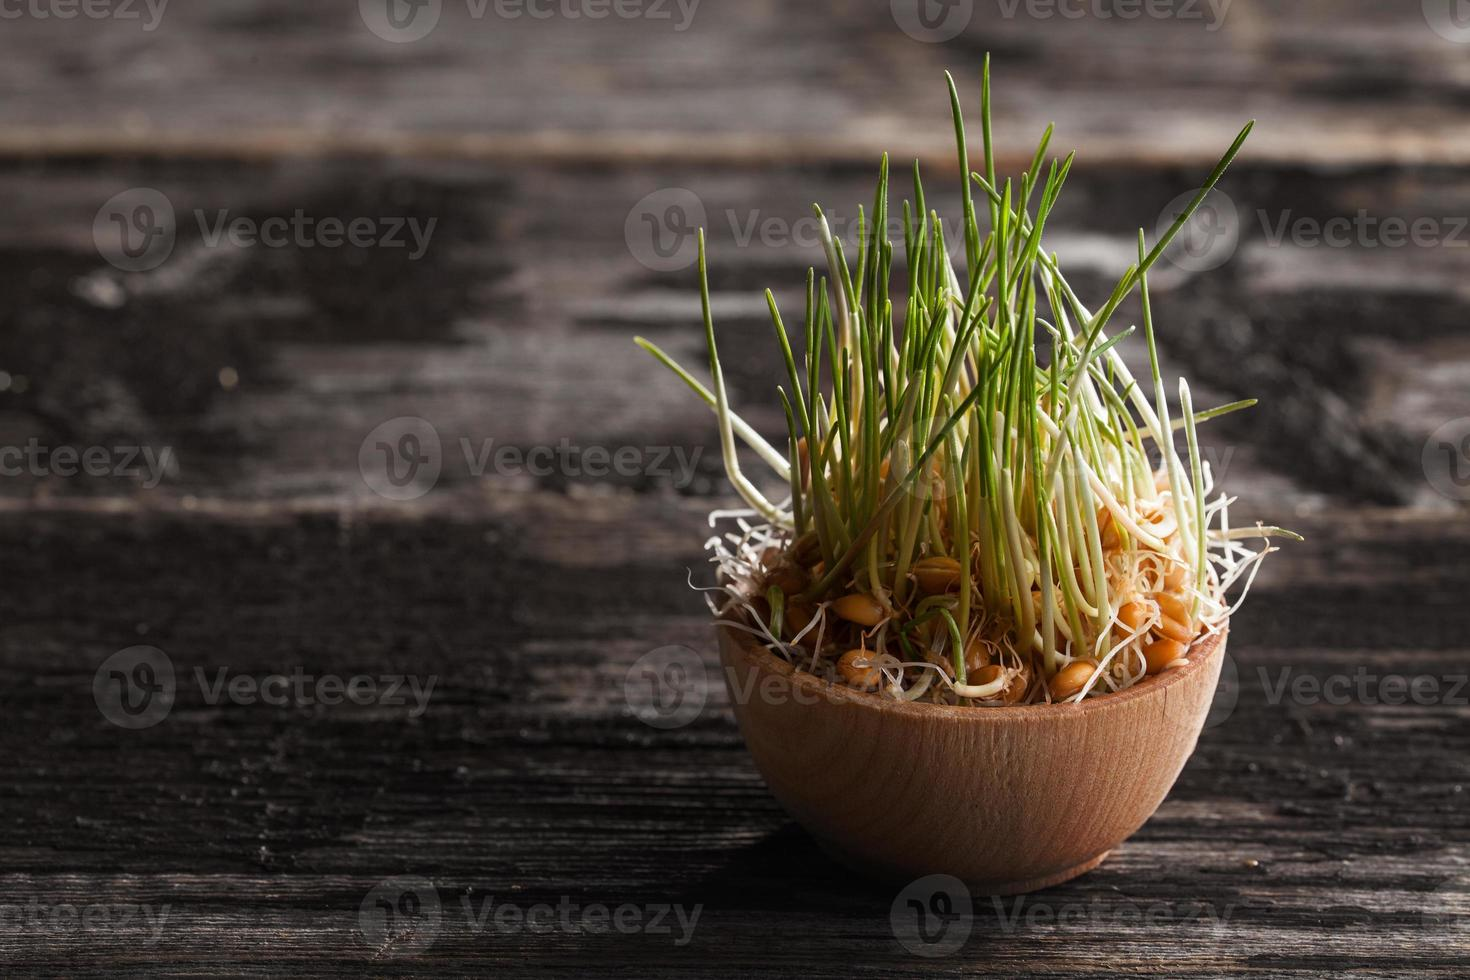 Wheat Grass Sprouts in a Wooden bowl photo